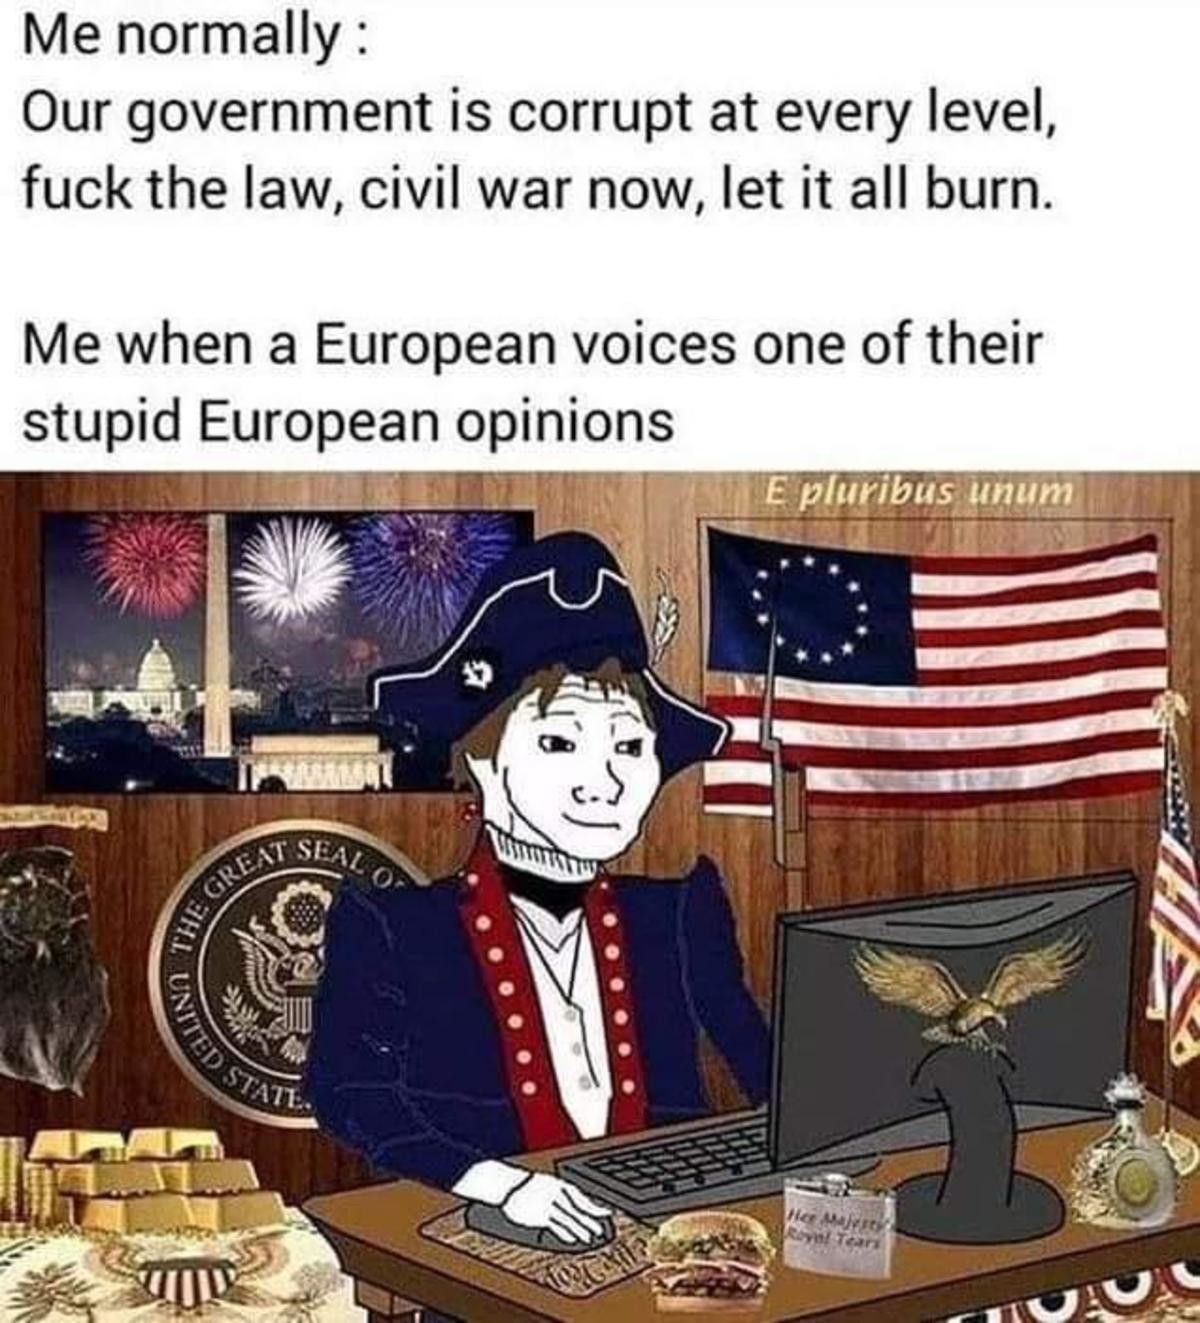 europoors. .. My patriotic feelings mingle well with my disdain for the government. I'm proud that my country was founded on the idea of keeping the government as a necessary